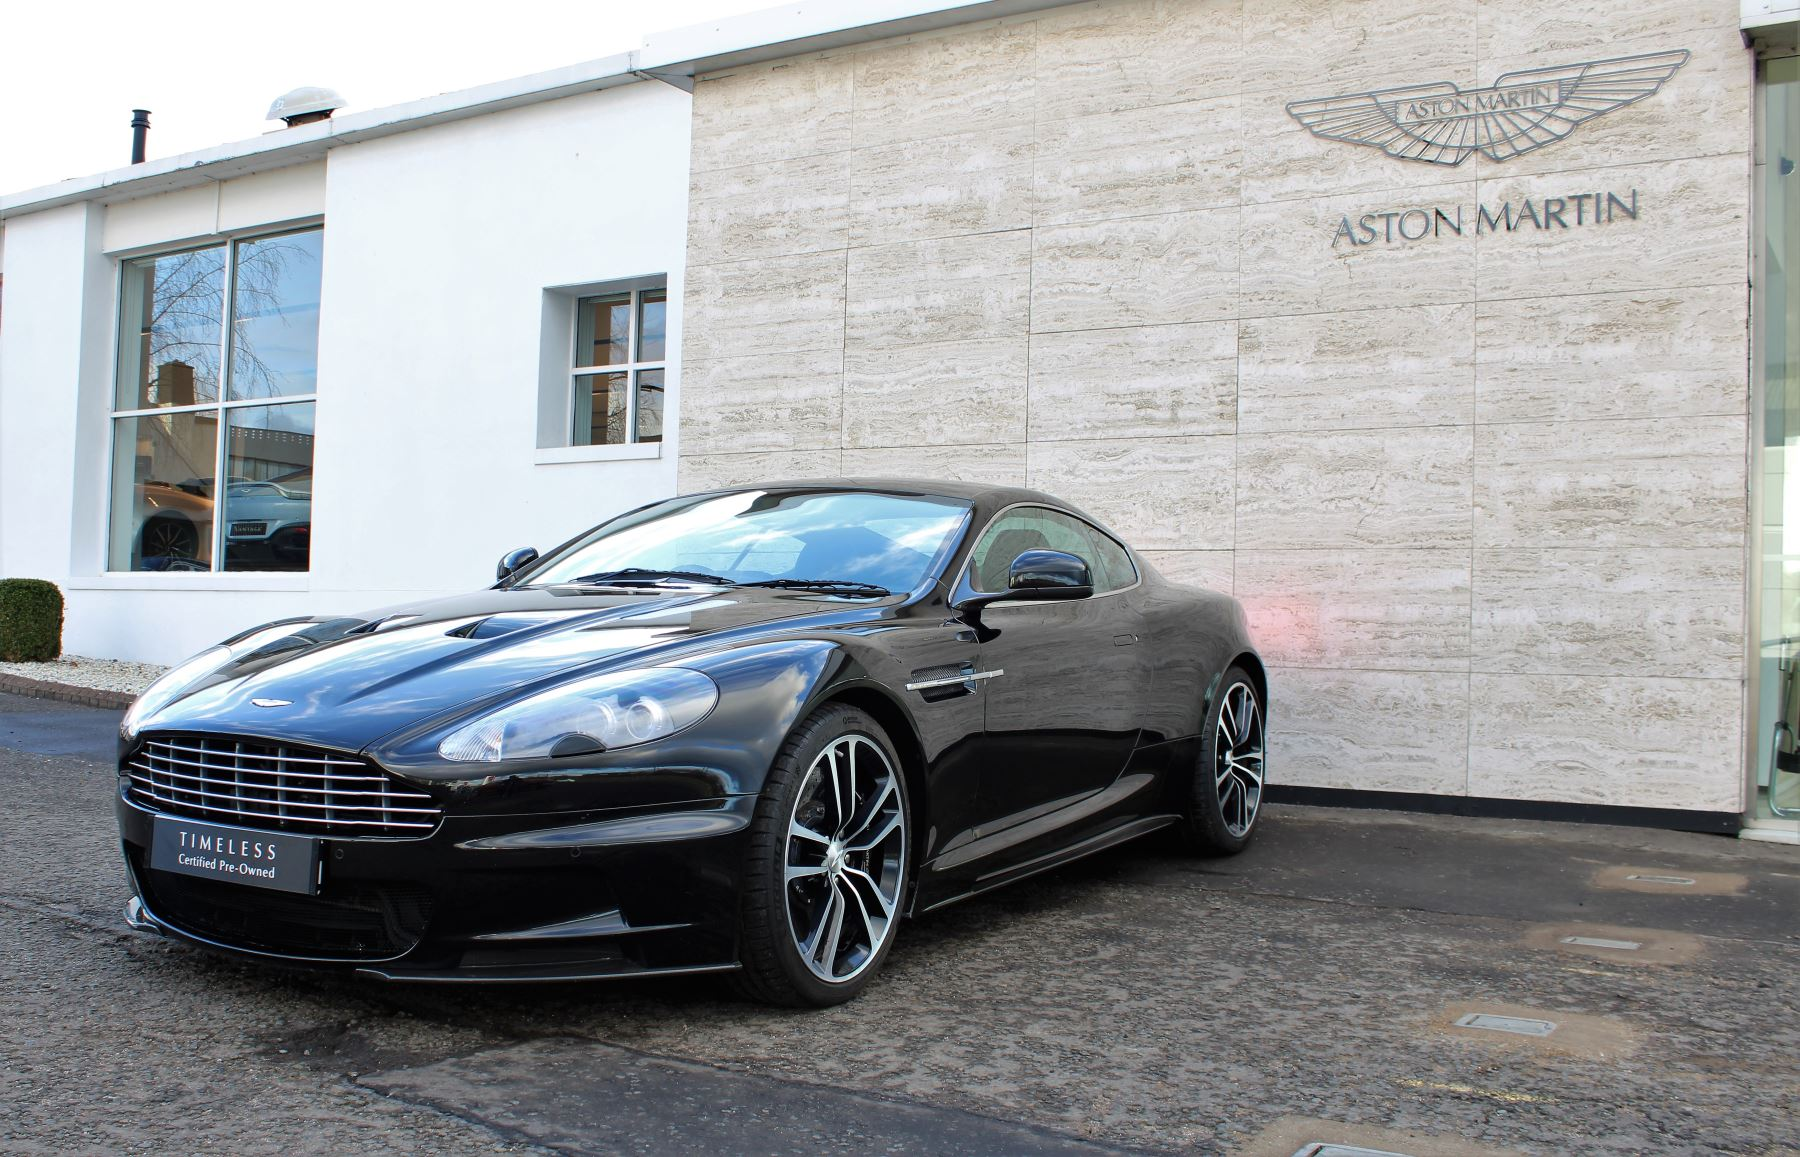 Aston Martin DBS V12 CARBON EDITION 2dr Touchtronic image 4